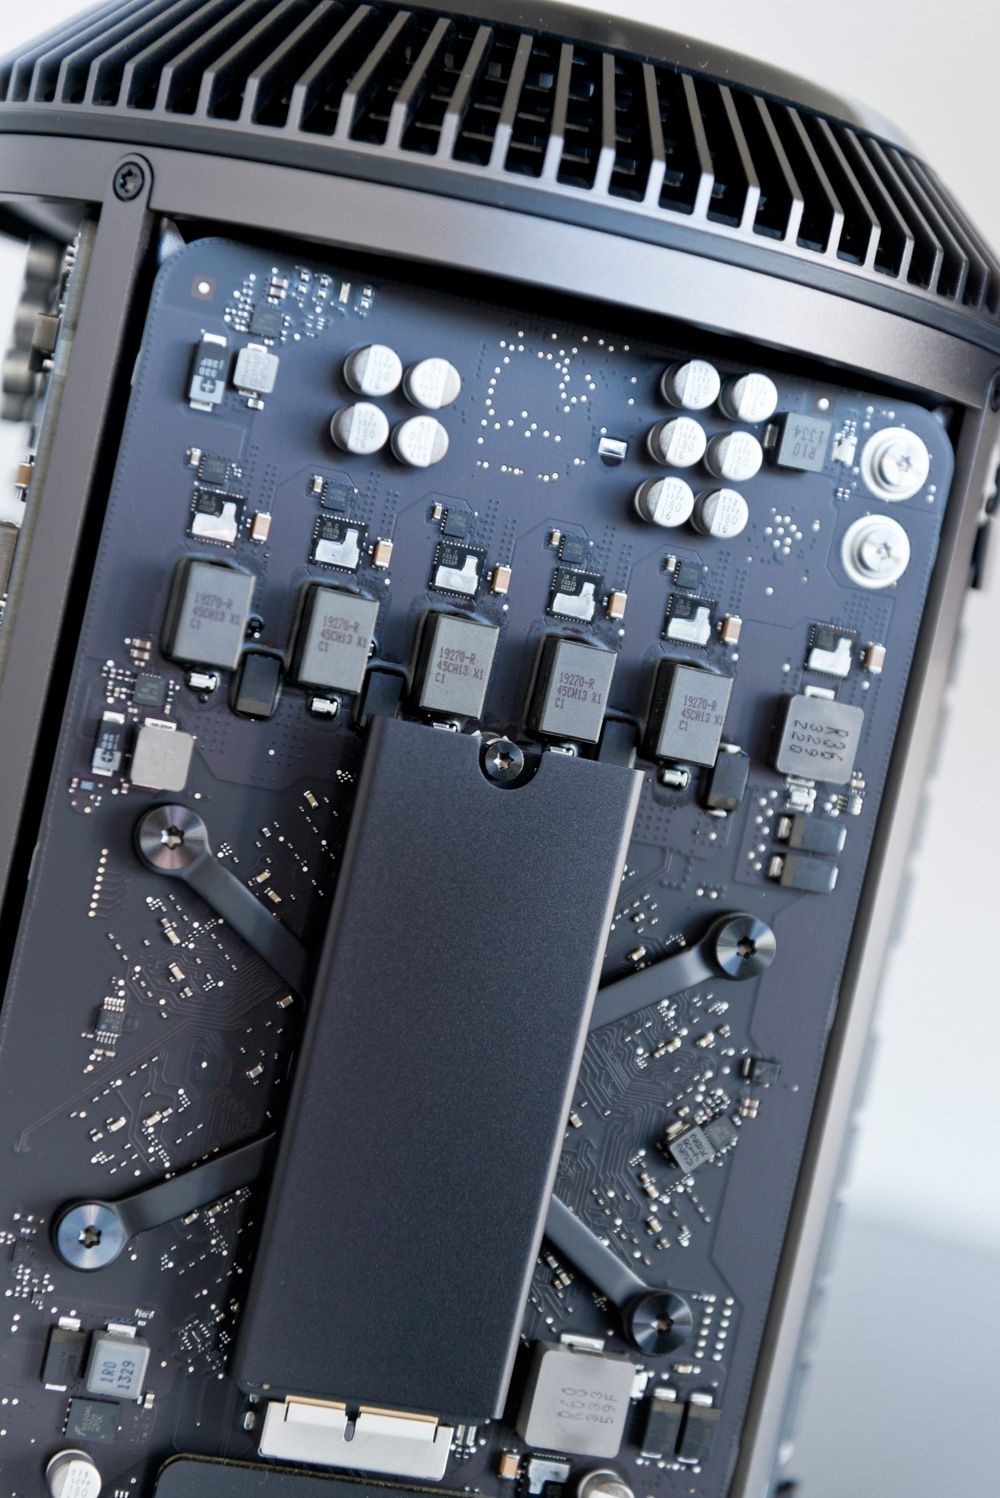 Mac Professional Makeup Artist Kit: Apple Mac Pro 2013: In Pictures